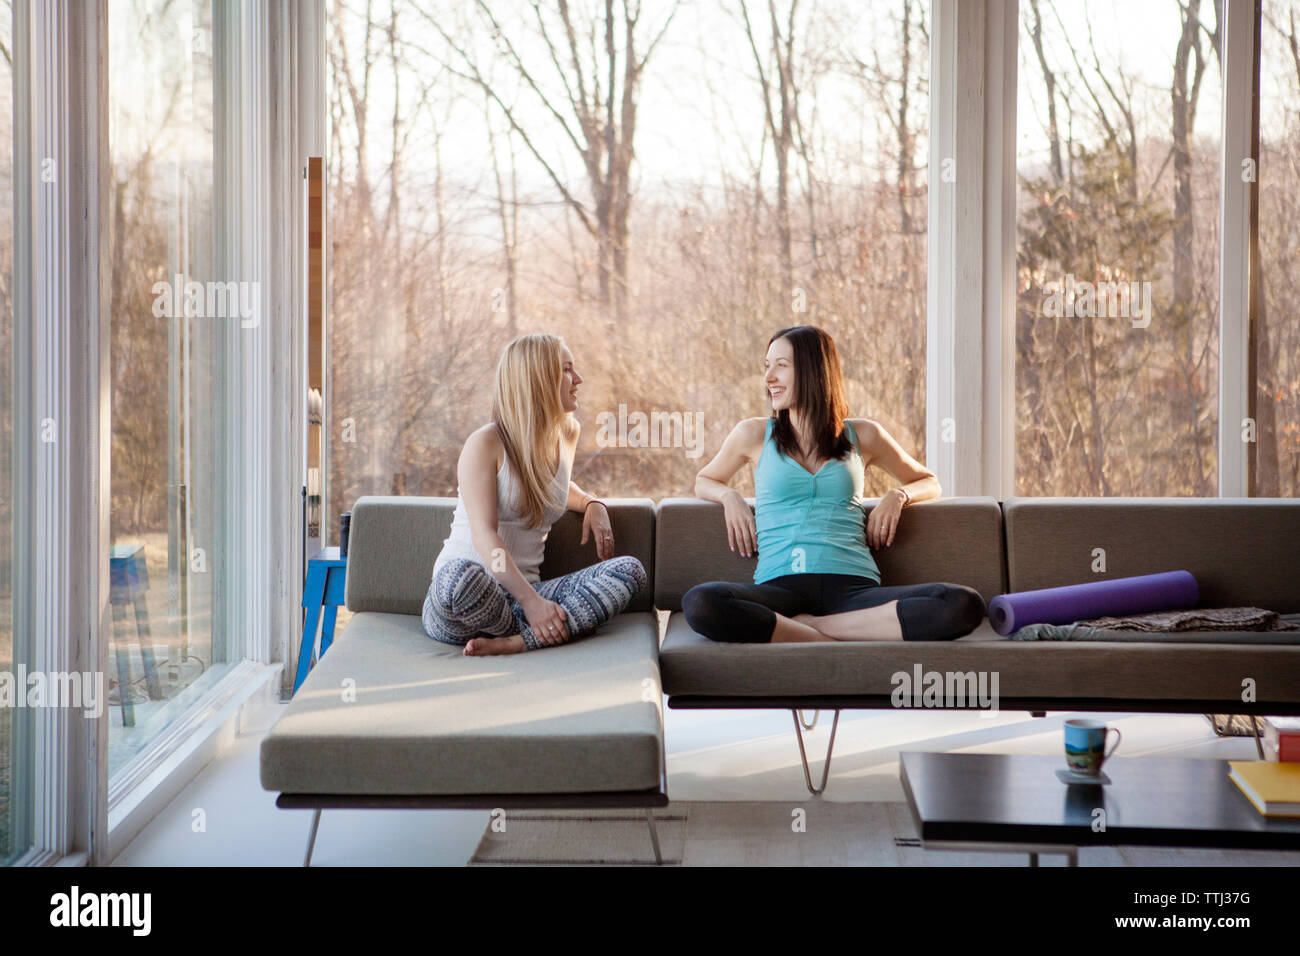 Homosexual females spending leisure time in living room - Stock Image